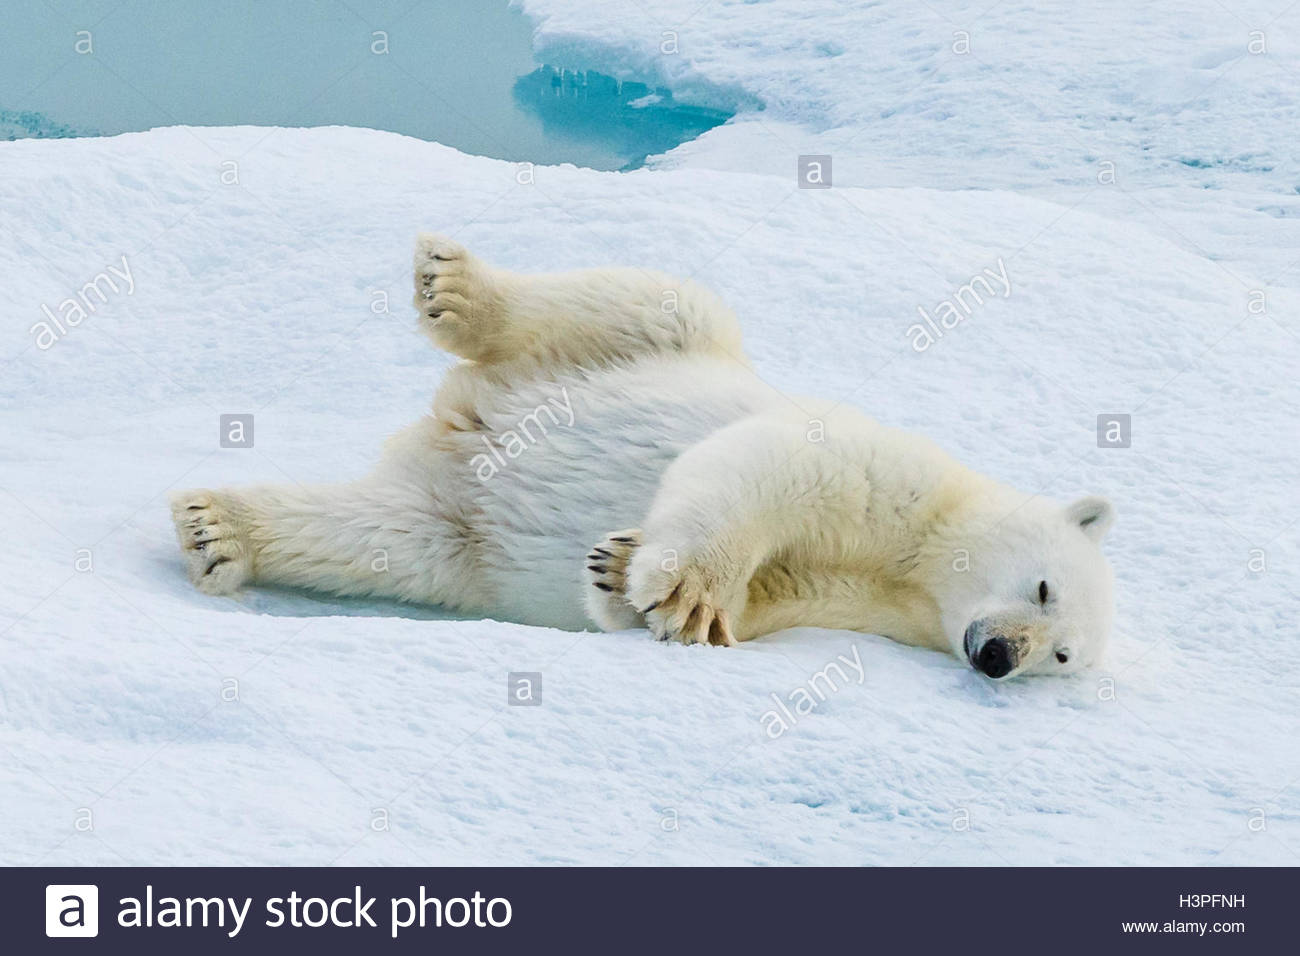 Playful behavior, a young polar bear cub (Ursus maritimus) on an ice floe in the Canadian Arctic. - Stock Image